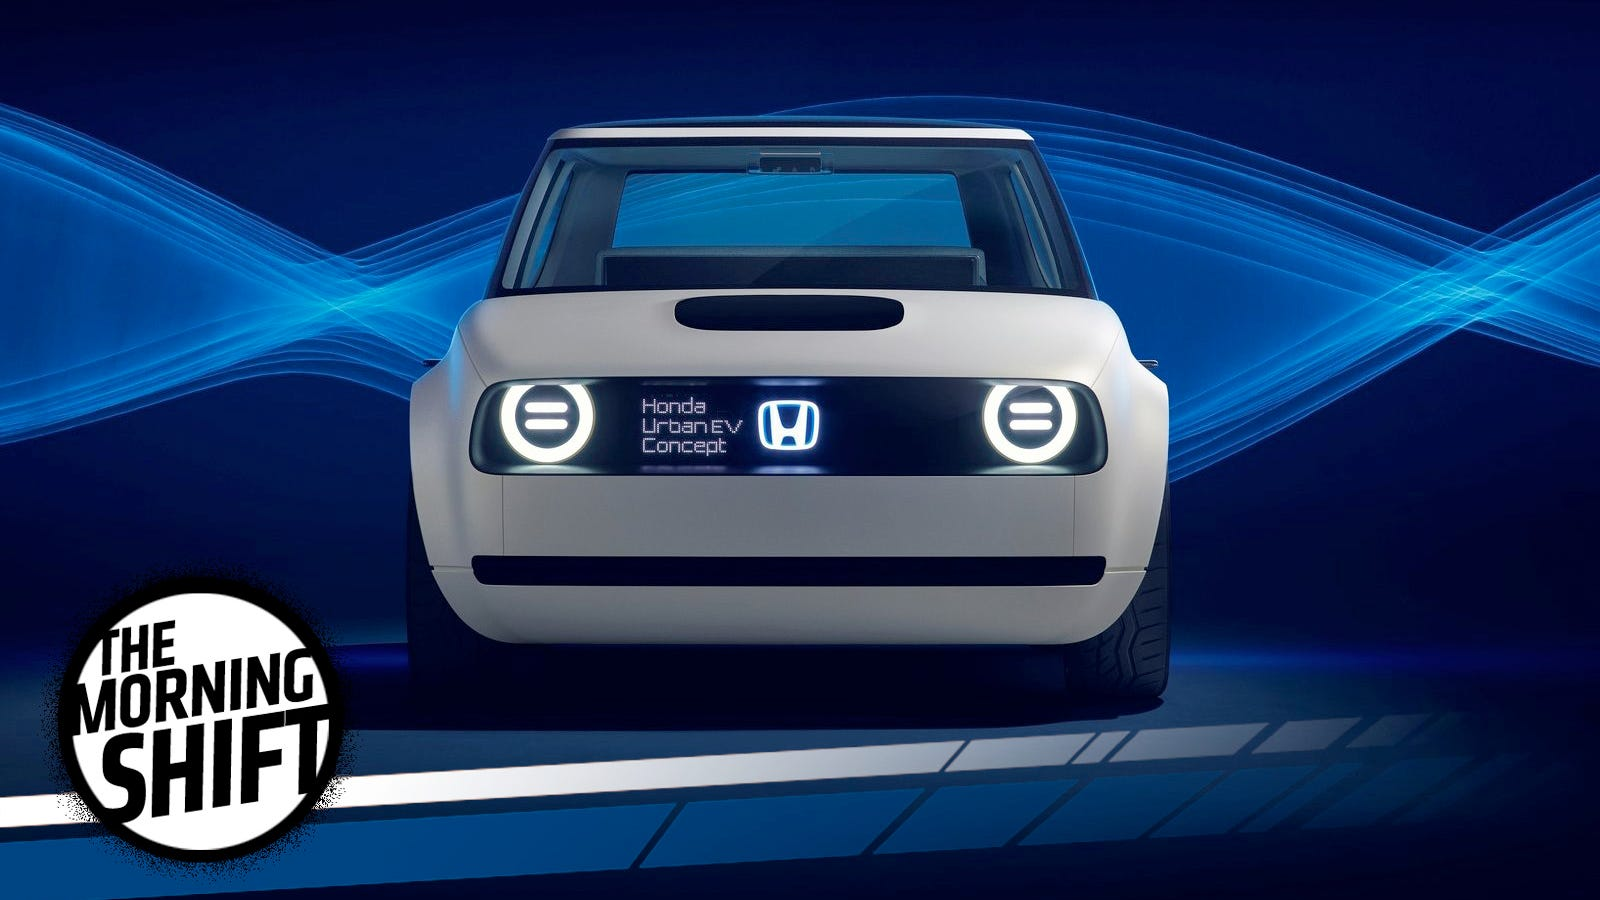 Japan\u0027s Car Industry Is Scrambling To Catch Up On Technology